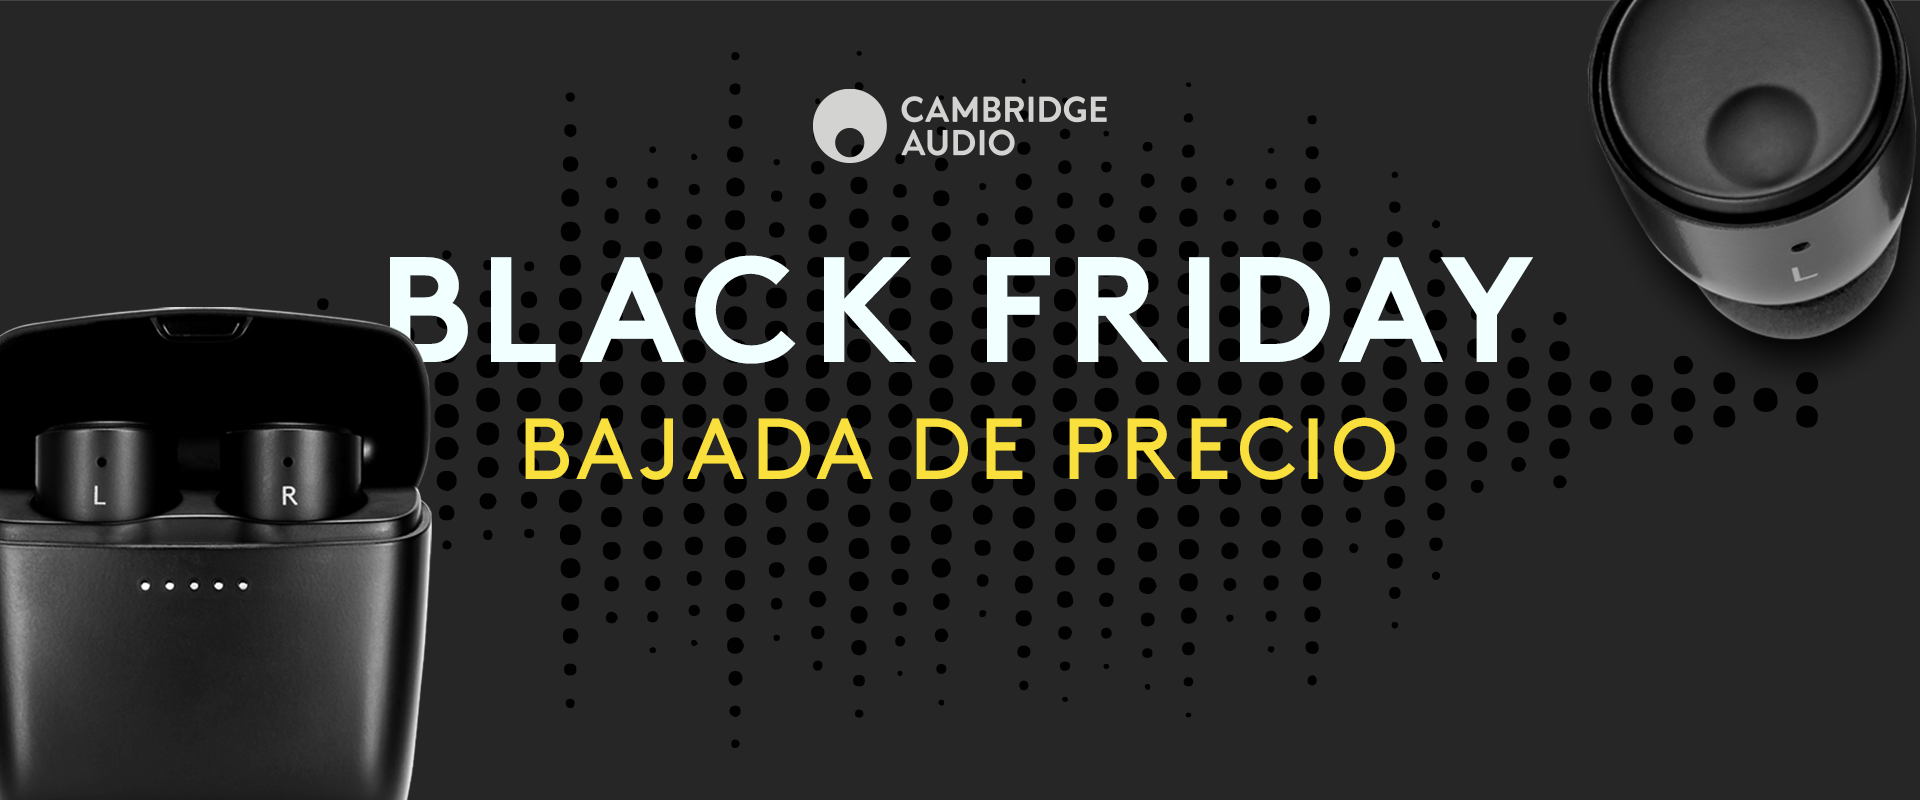 Black-Friday-_-Melomania-1-_-Cambridge-Audio